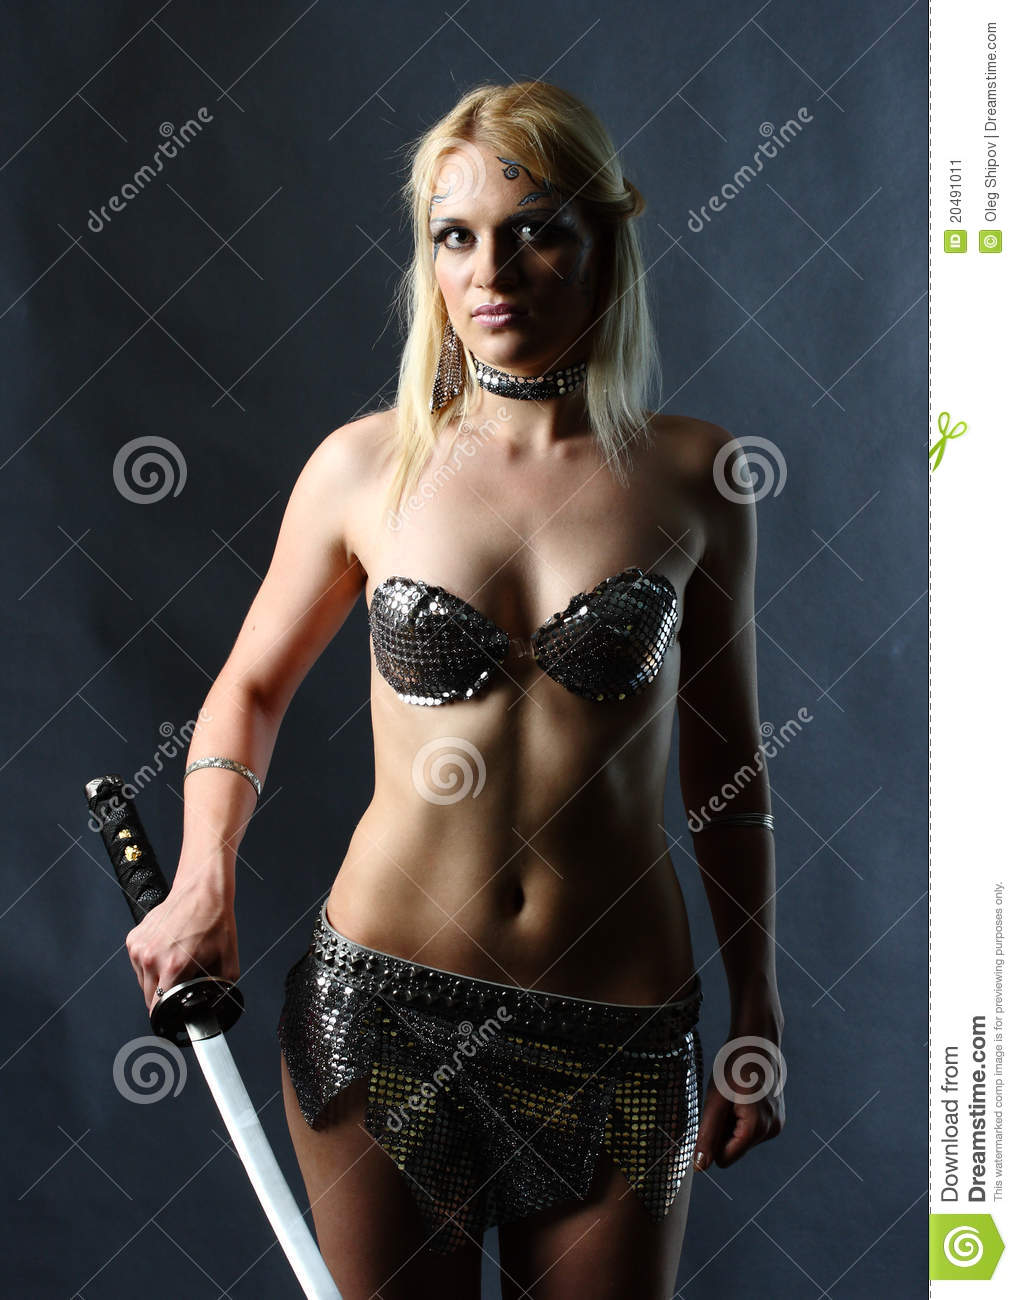 Warrior girl pics sexy cutie